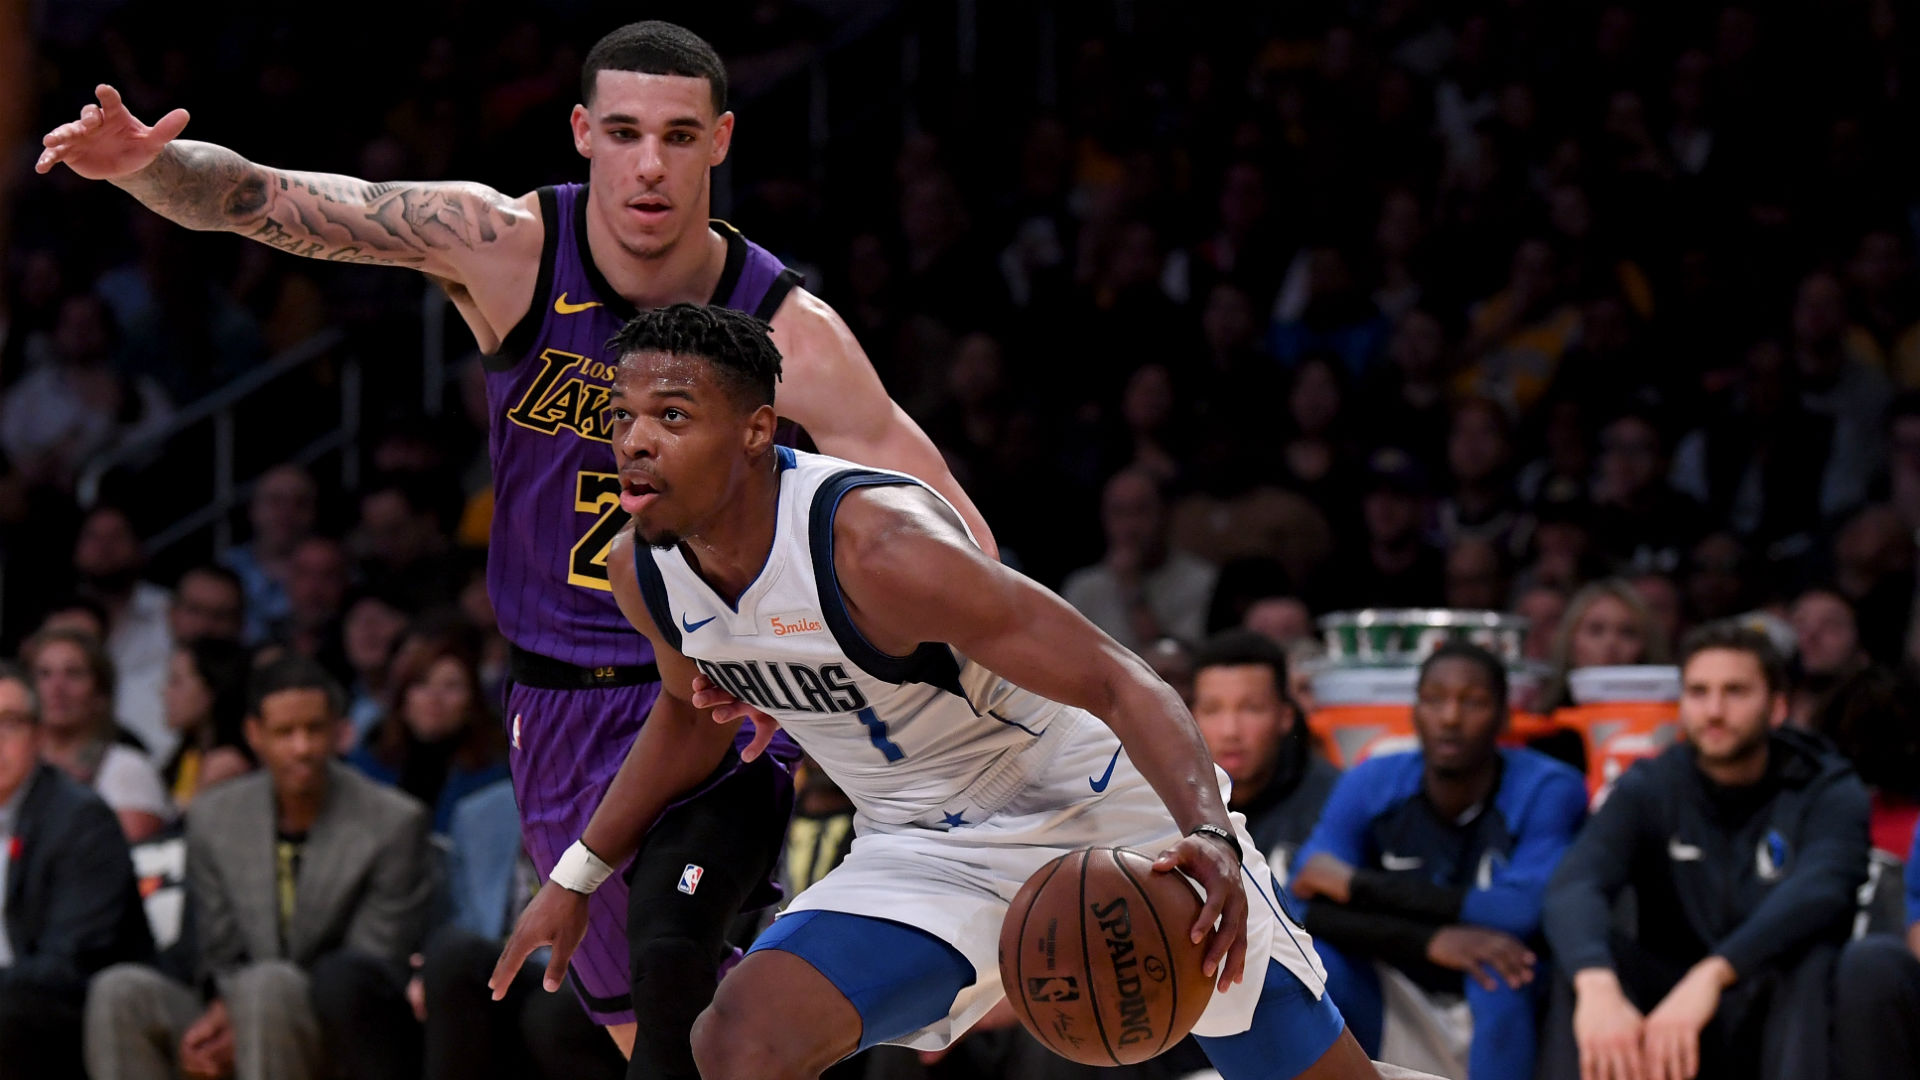 NBA trade rumors: Mavs have discussed Dennis Smith Jr. deal with Knicks, Lakers, Magic